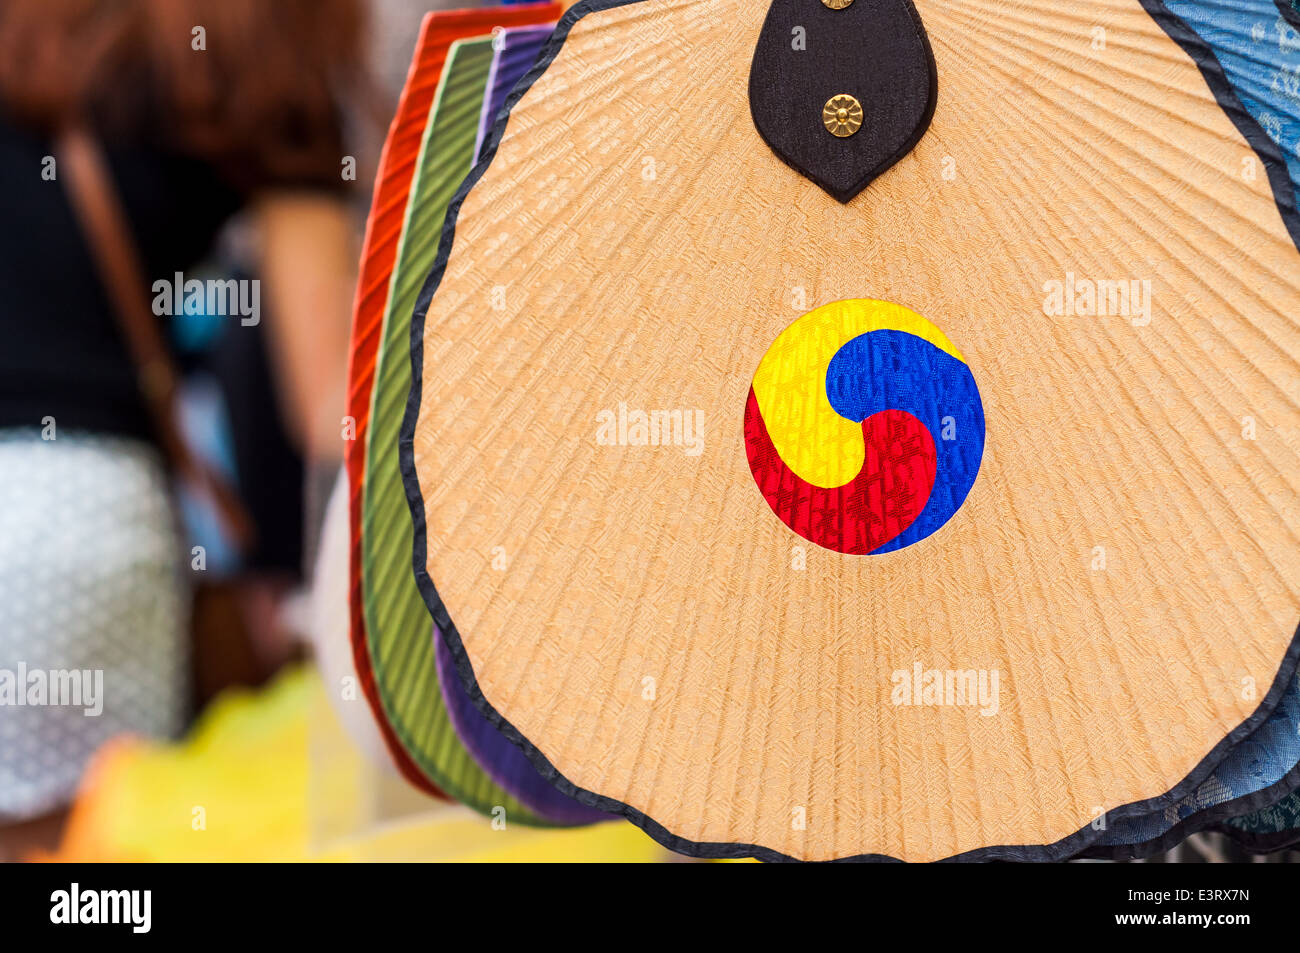 A fan painted with a traditional Korean symbol hangs outside a vendor in the Insadong district of Seoul, South Korea. - Stock Image